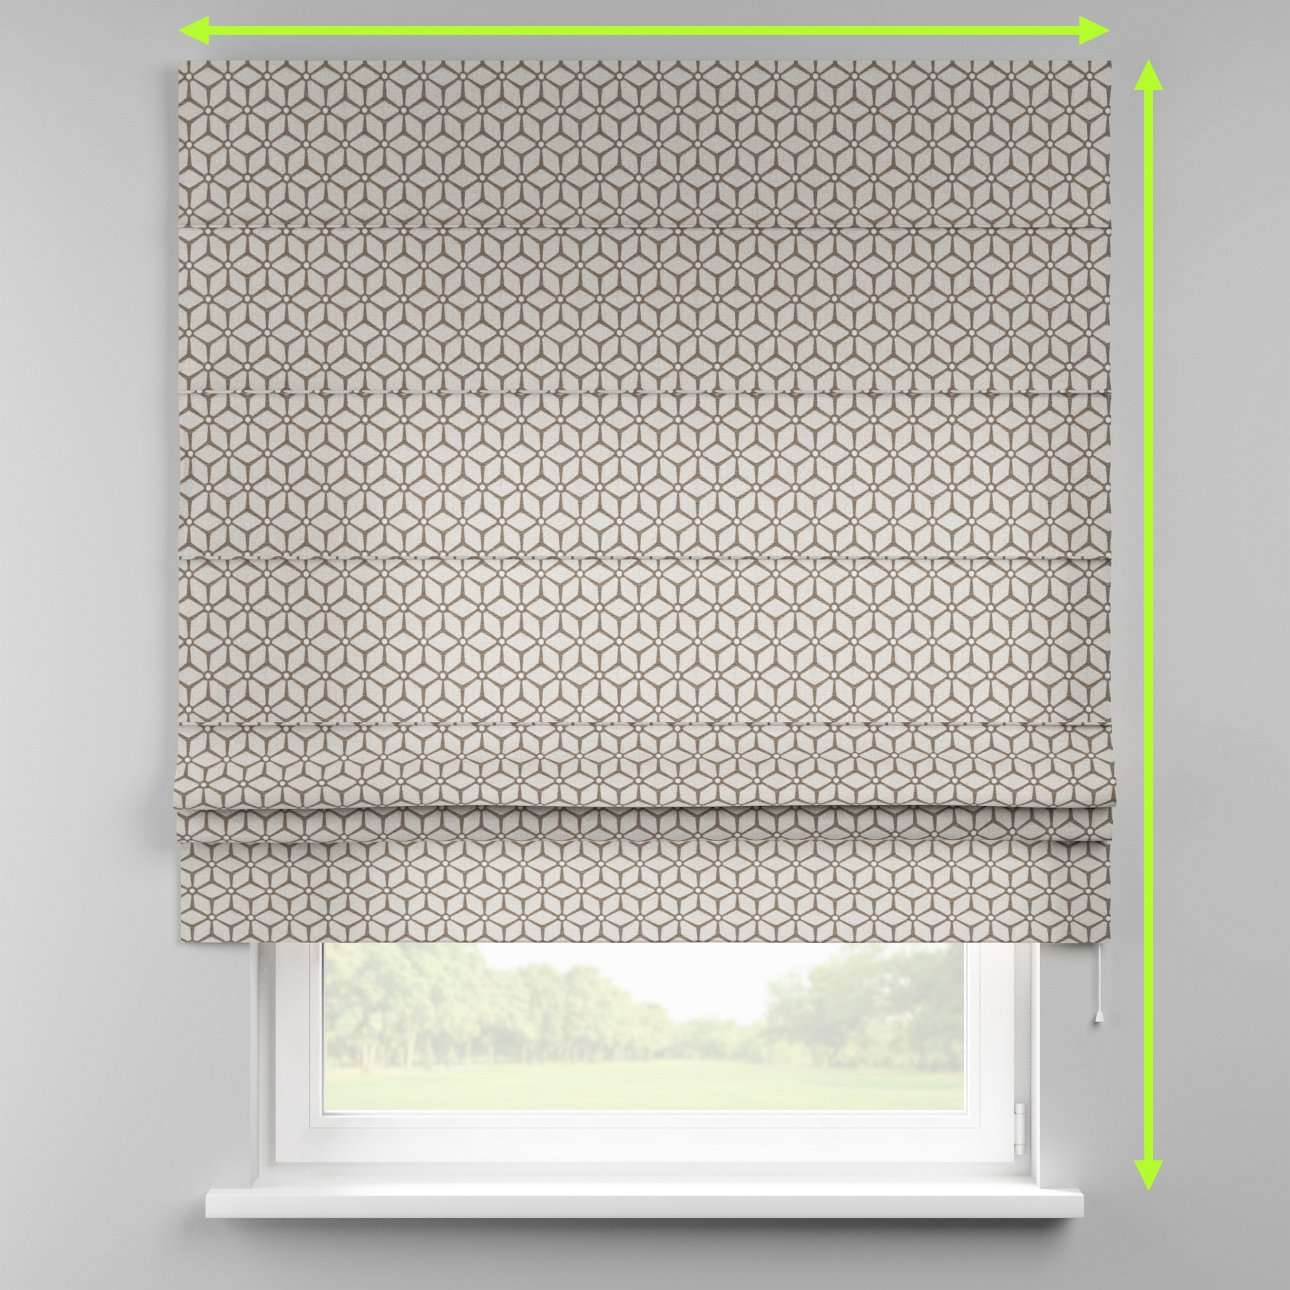 Padva roman blind  in collection Rustica, fabric: 138-21